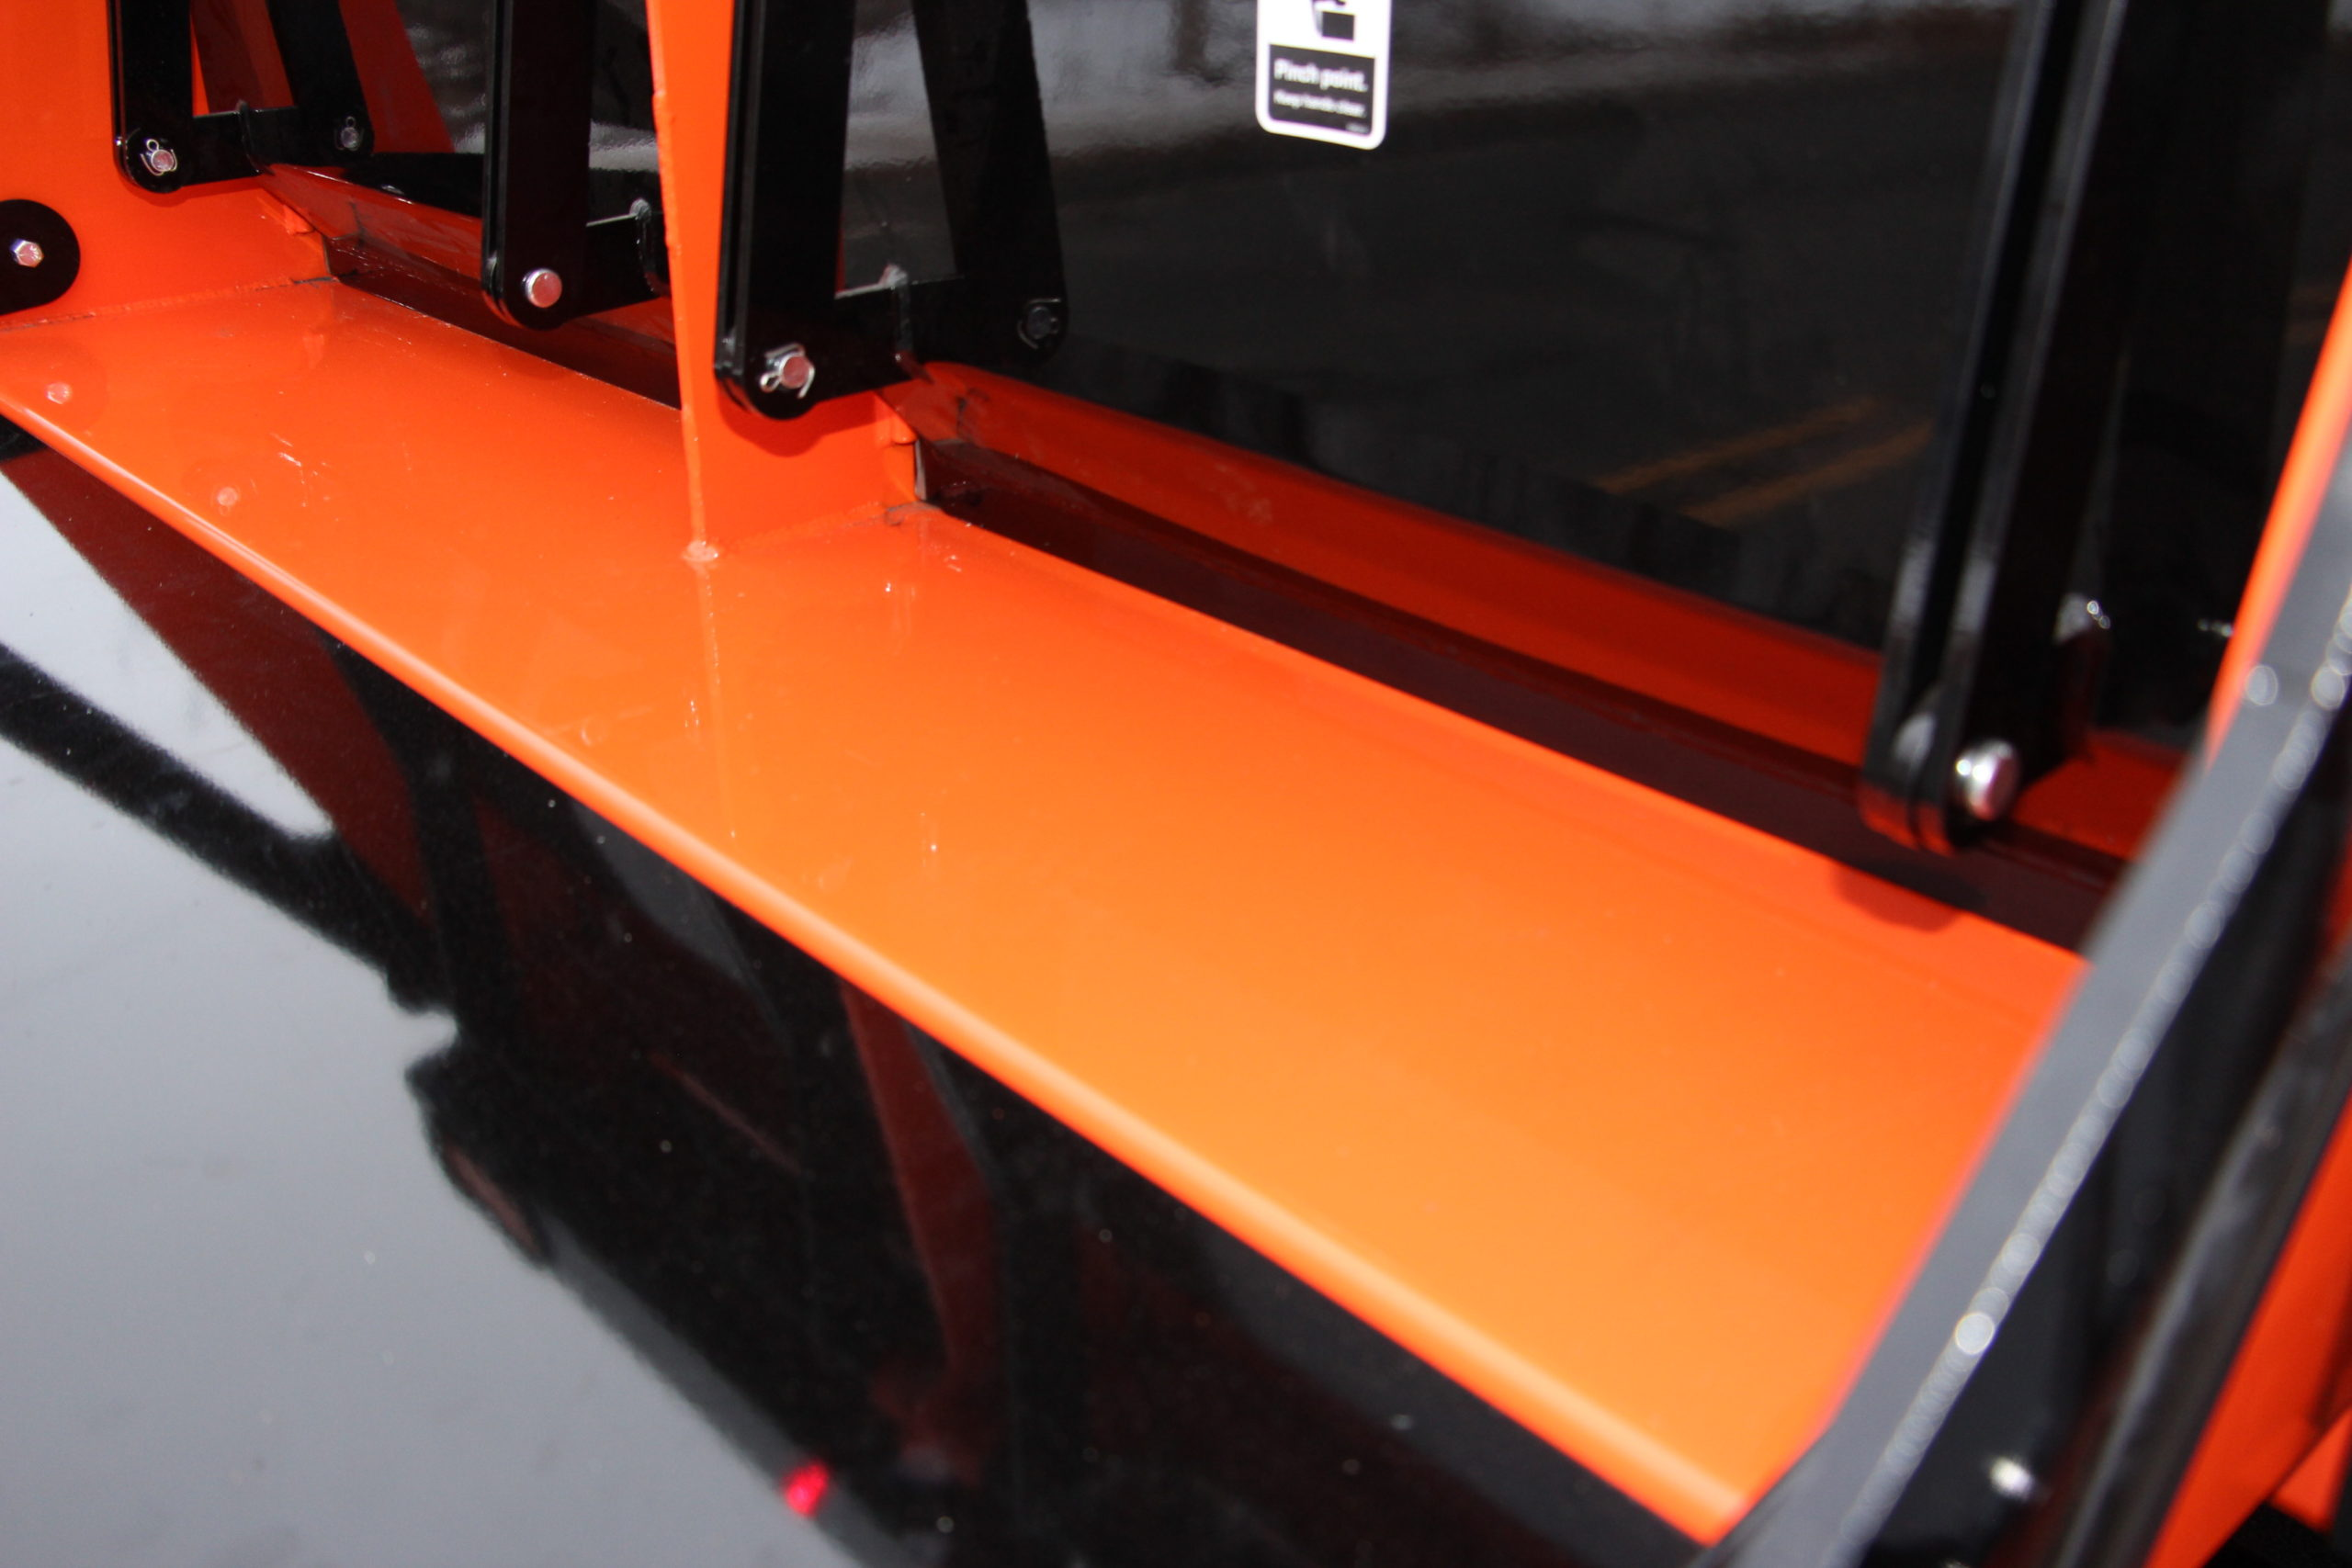 Rear Insulated Doors heated with Burner Exhaust and Knife edge design